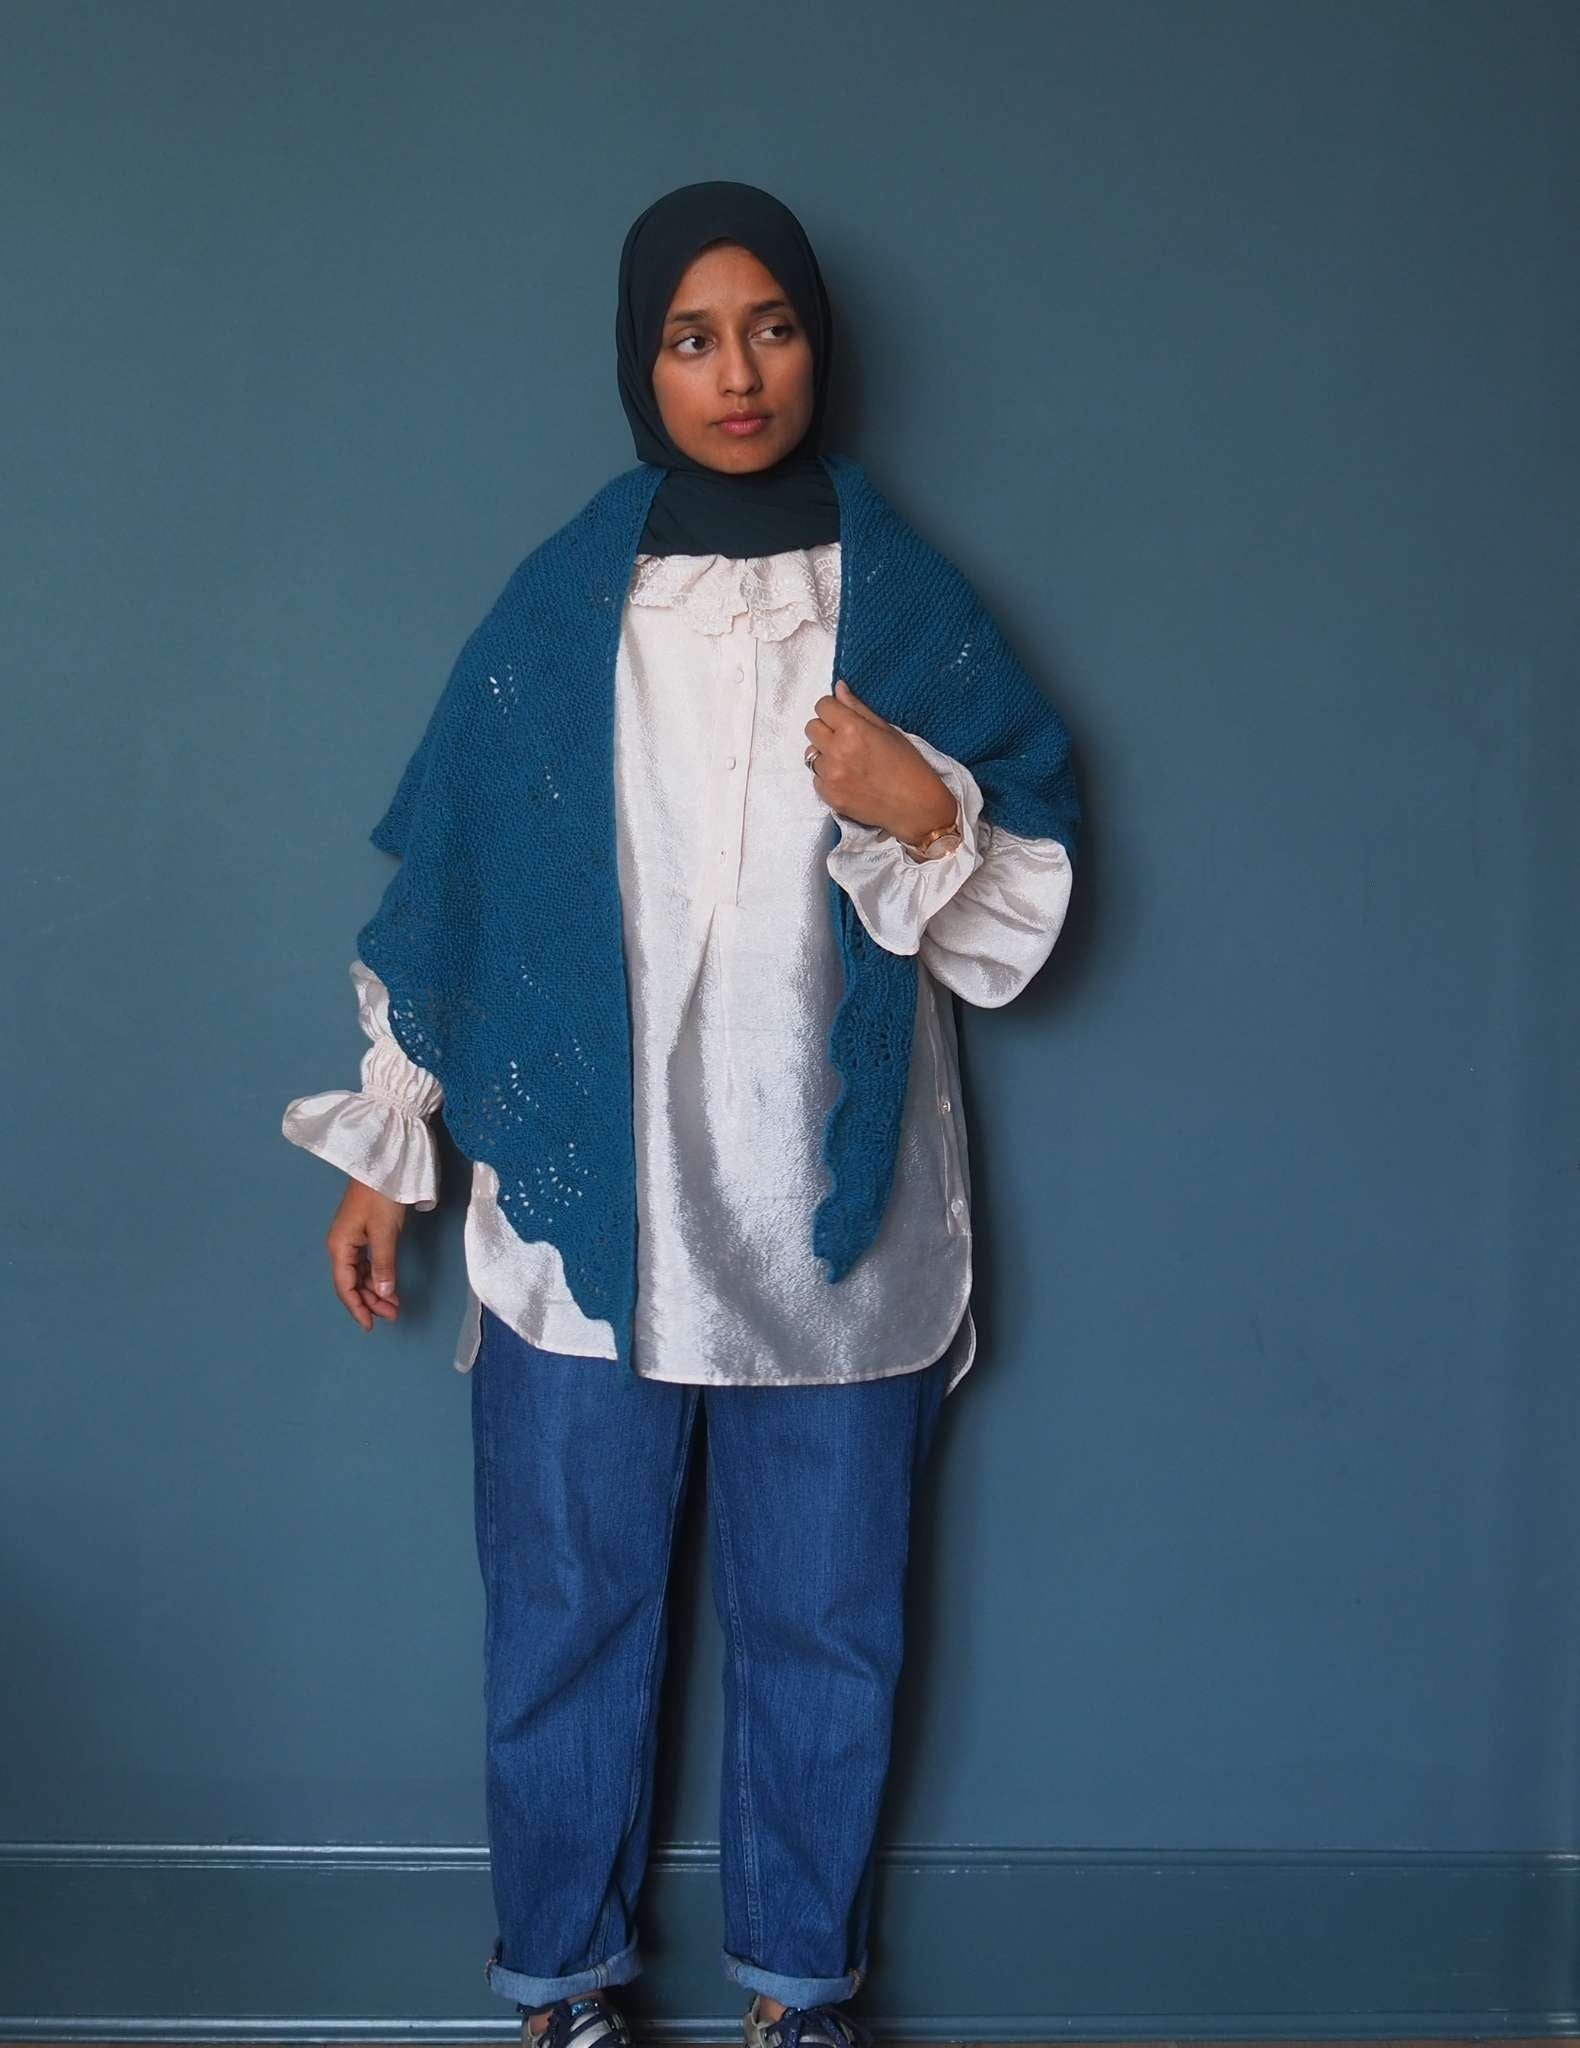 A brown woman in a hijab wears a ruffled white shirt and jeans, and stands in front of a dark blue background. She is wearing a blue wool shawl around her neck with the pointed ends hanging down in the front.